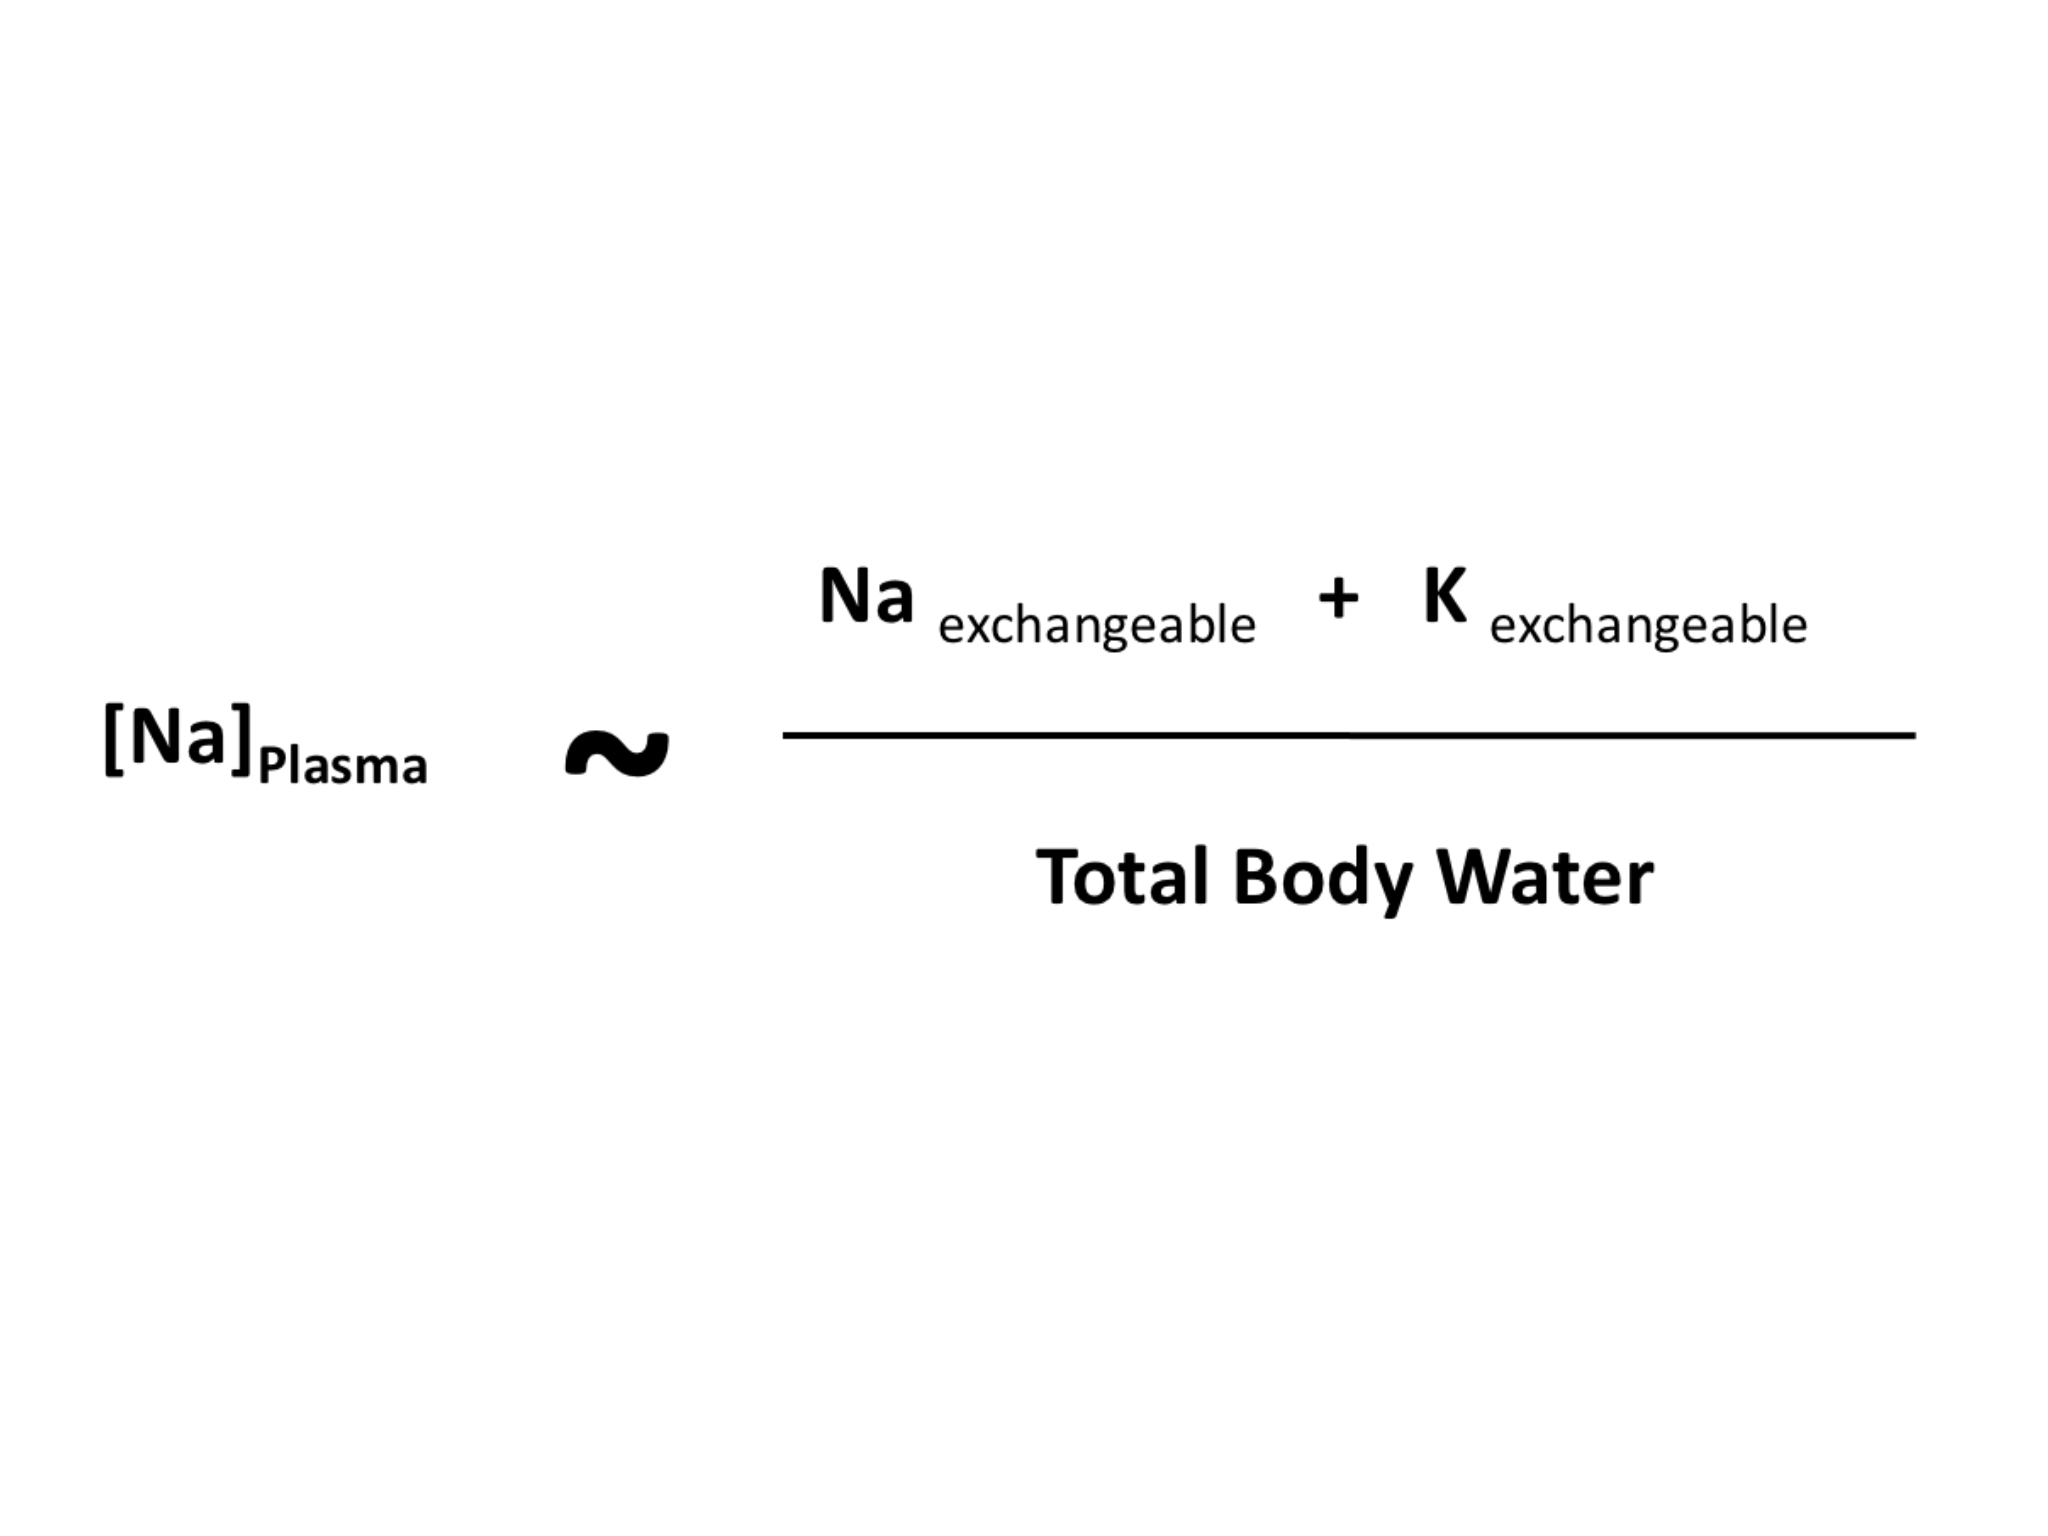 The relationship between P-[Na] and the amount of exchangeable sodium and potassium and the TBW.